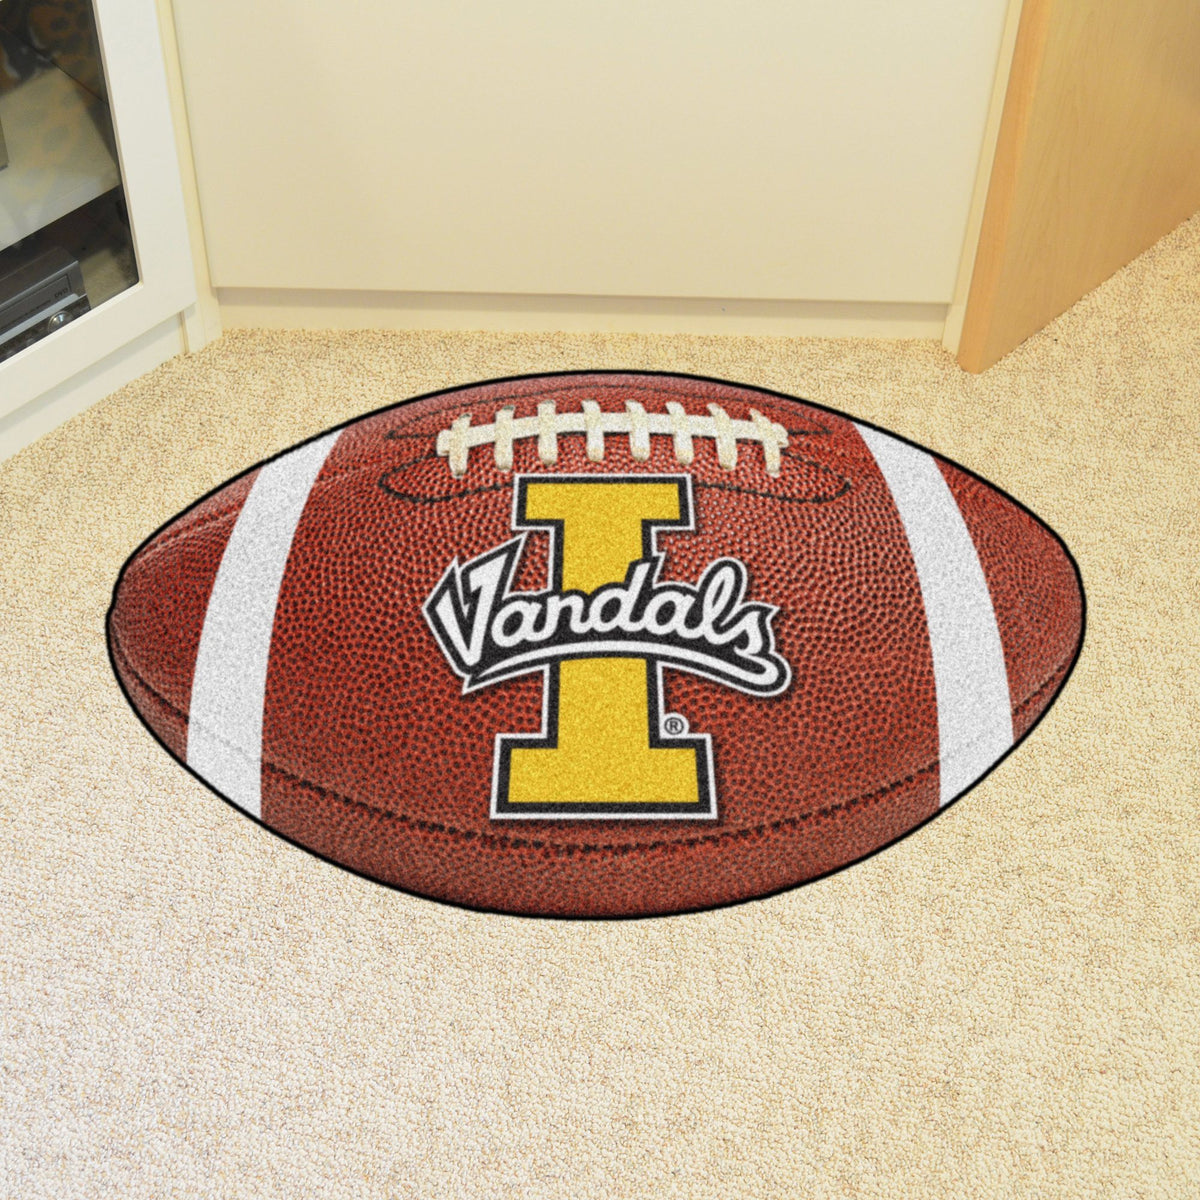 Collegiate - Football Mat: A - K Collegiate Mats, Rectangular Mats, Football Mat, Collegiate, Home Fan Mats Idaho